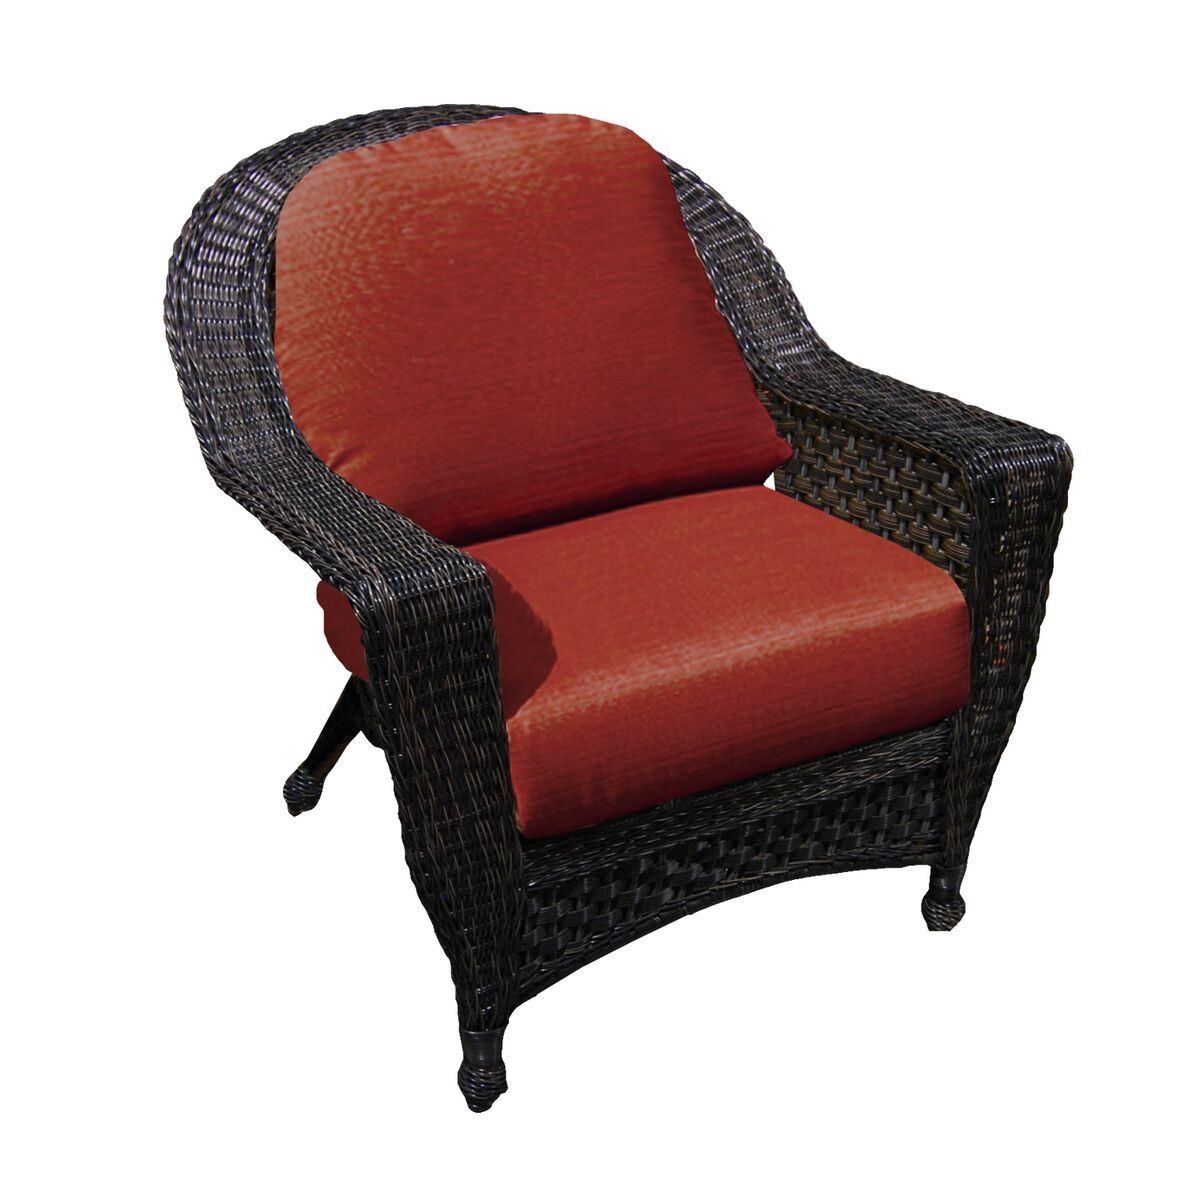 Georgetown Outdoor Patio Furniture Chair Patiohq